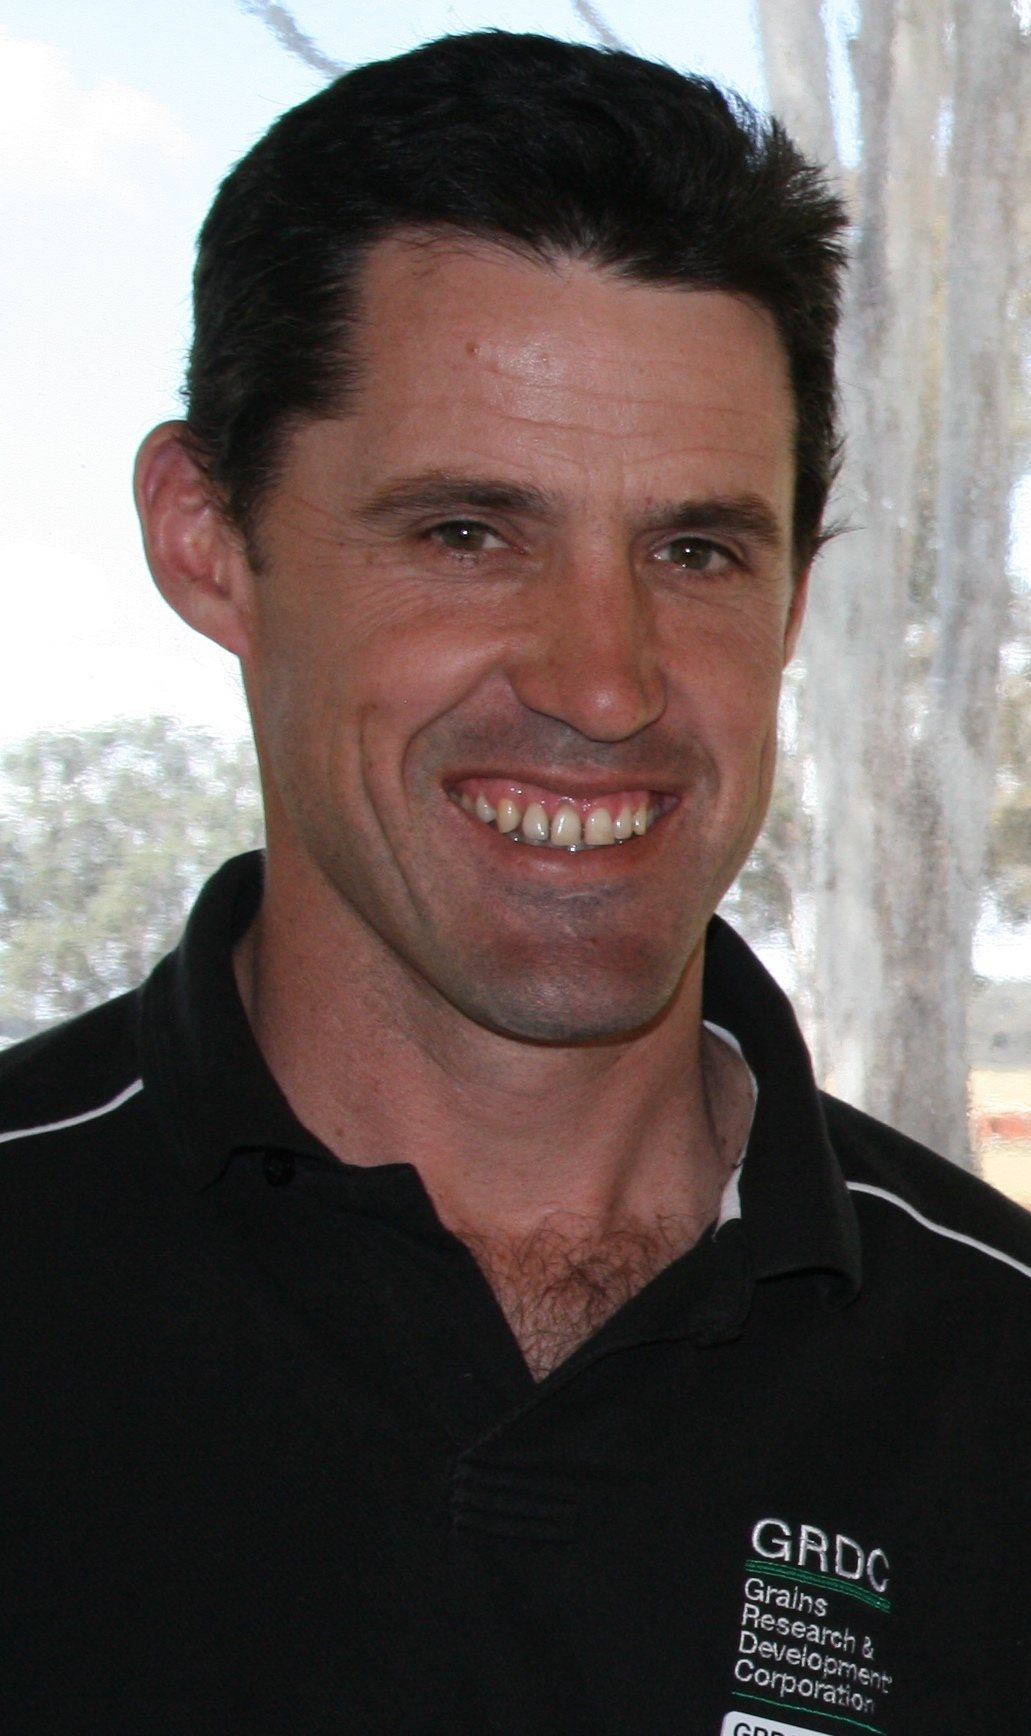 Image of Will Martel, GRDC Northern Panellist